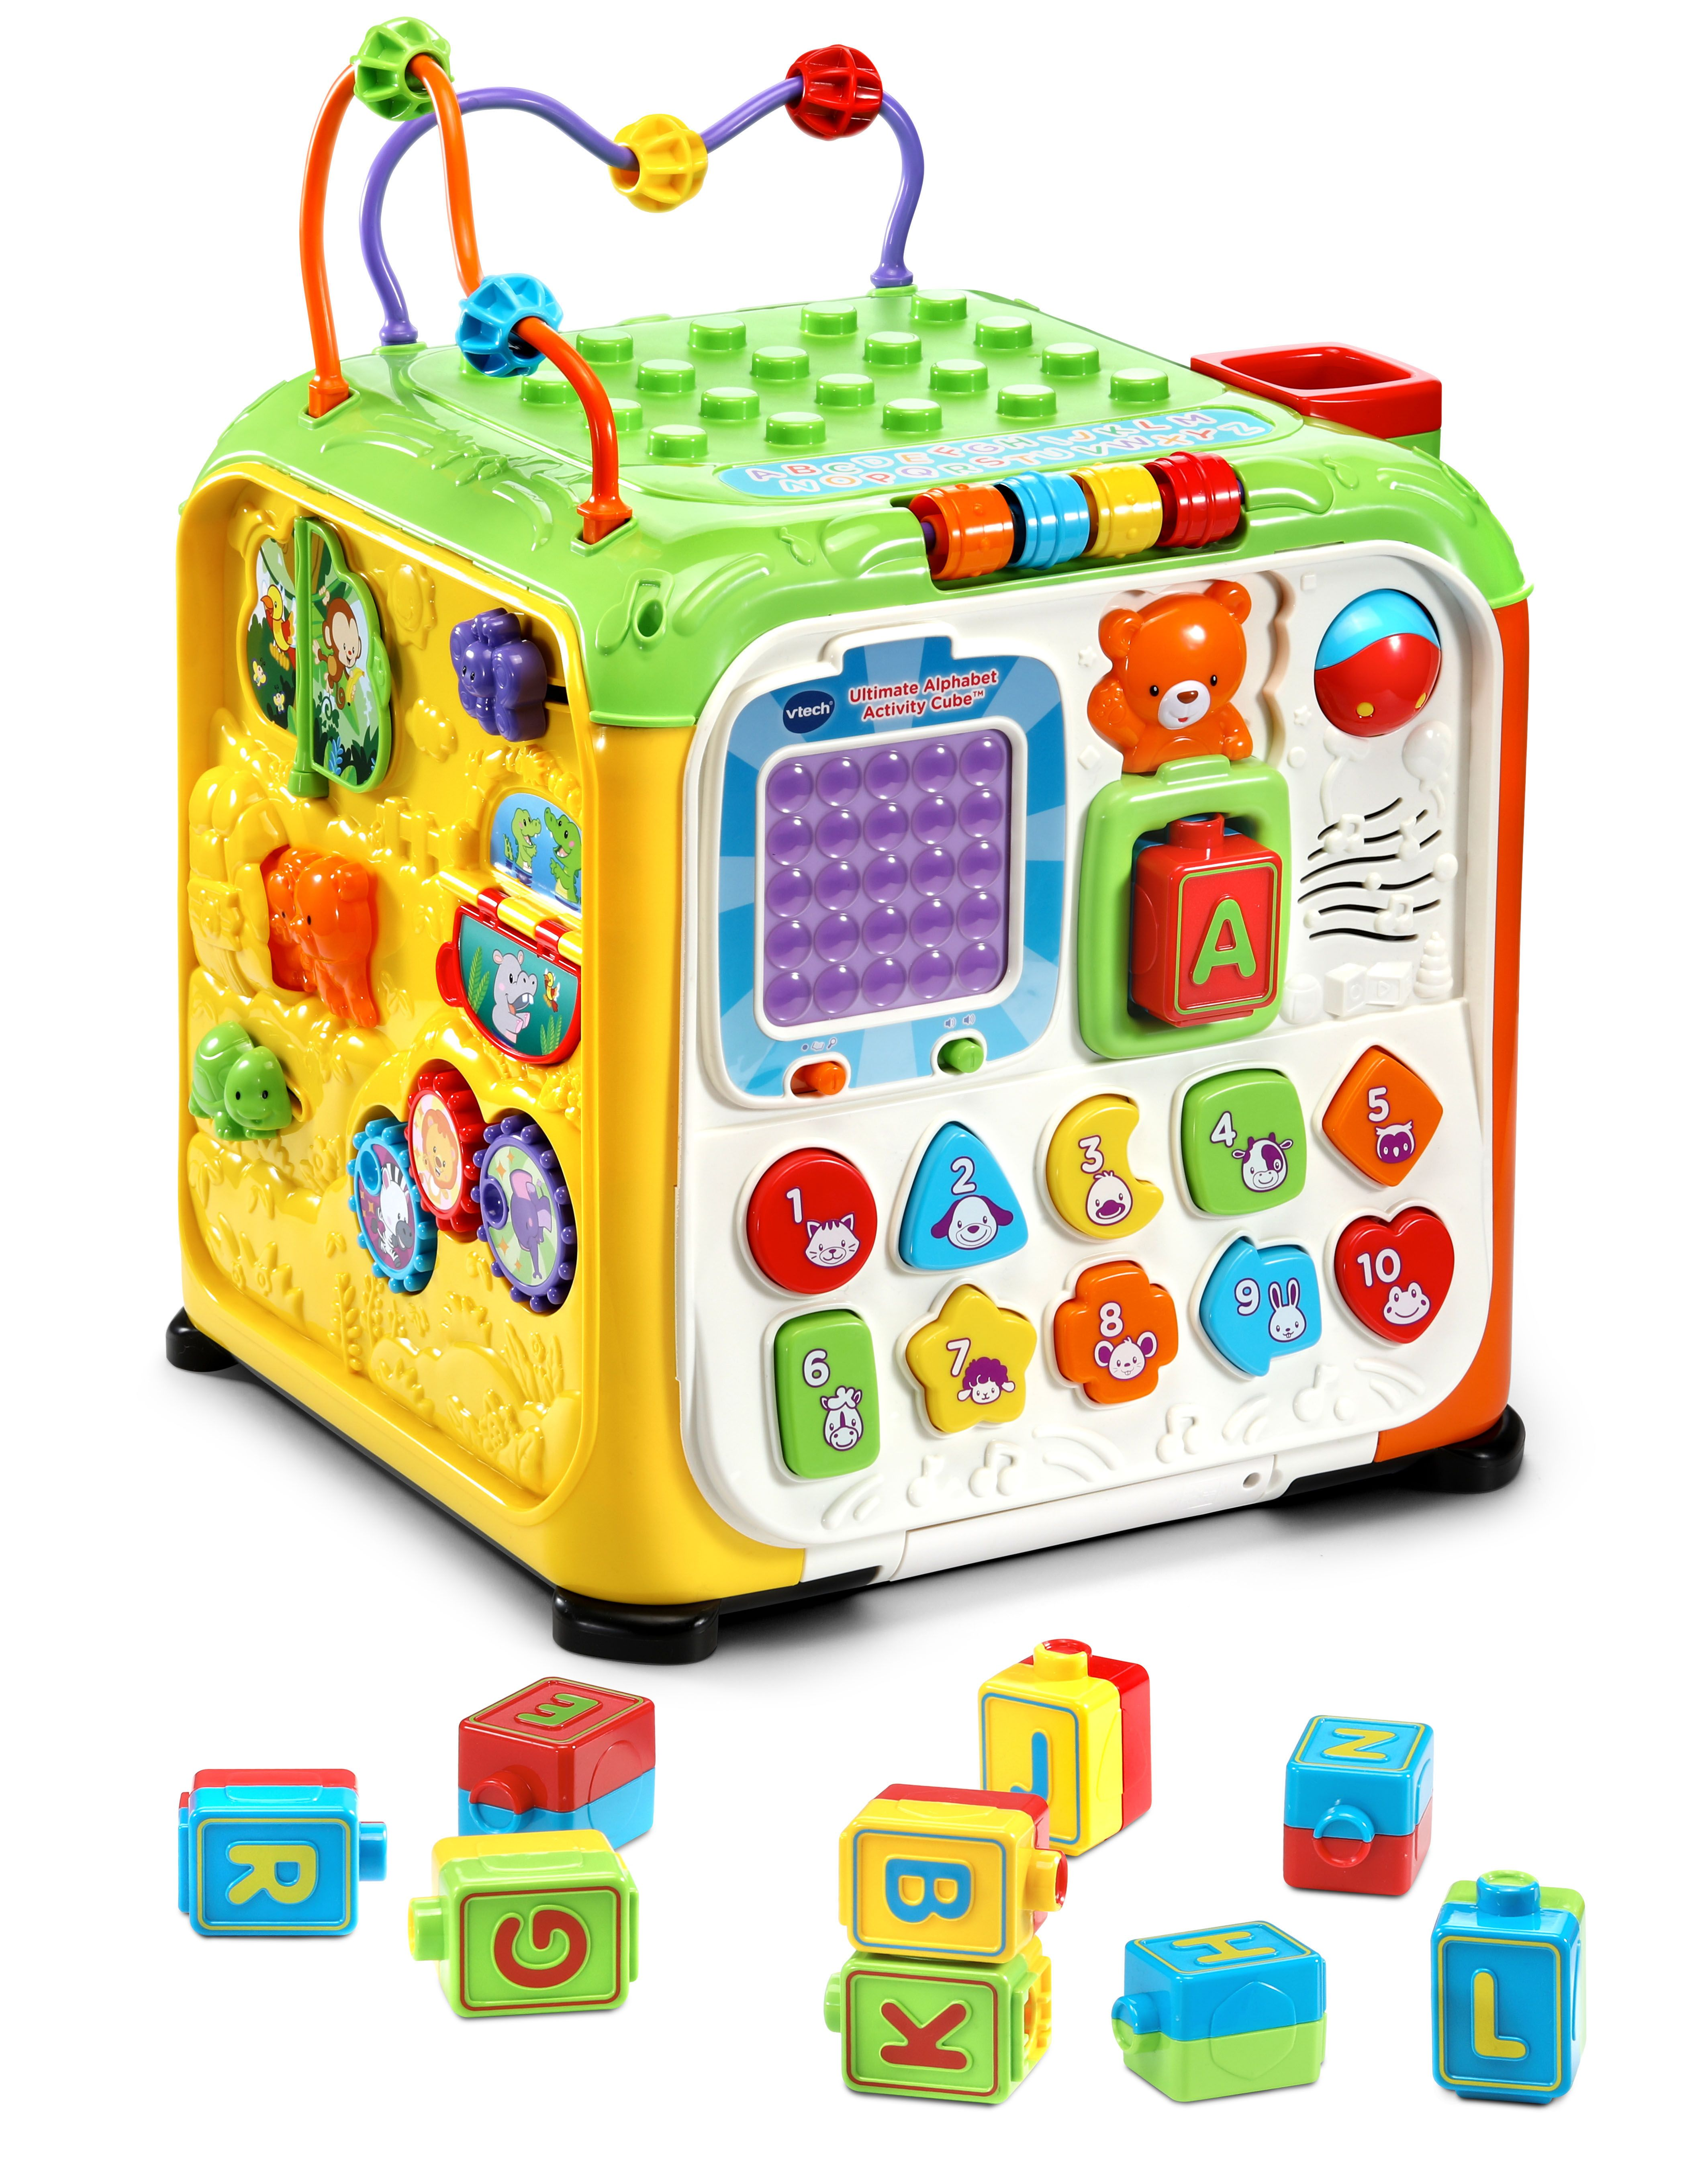 Get Up to 30% Off VTech Items at Amazon + Free Shipping w/Prime